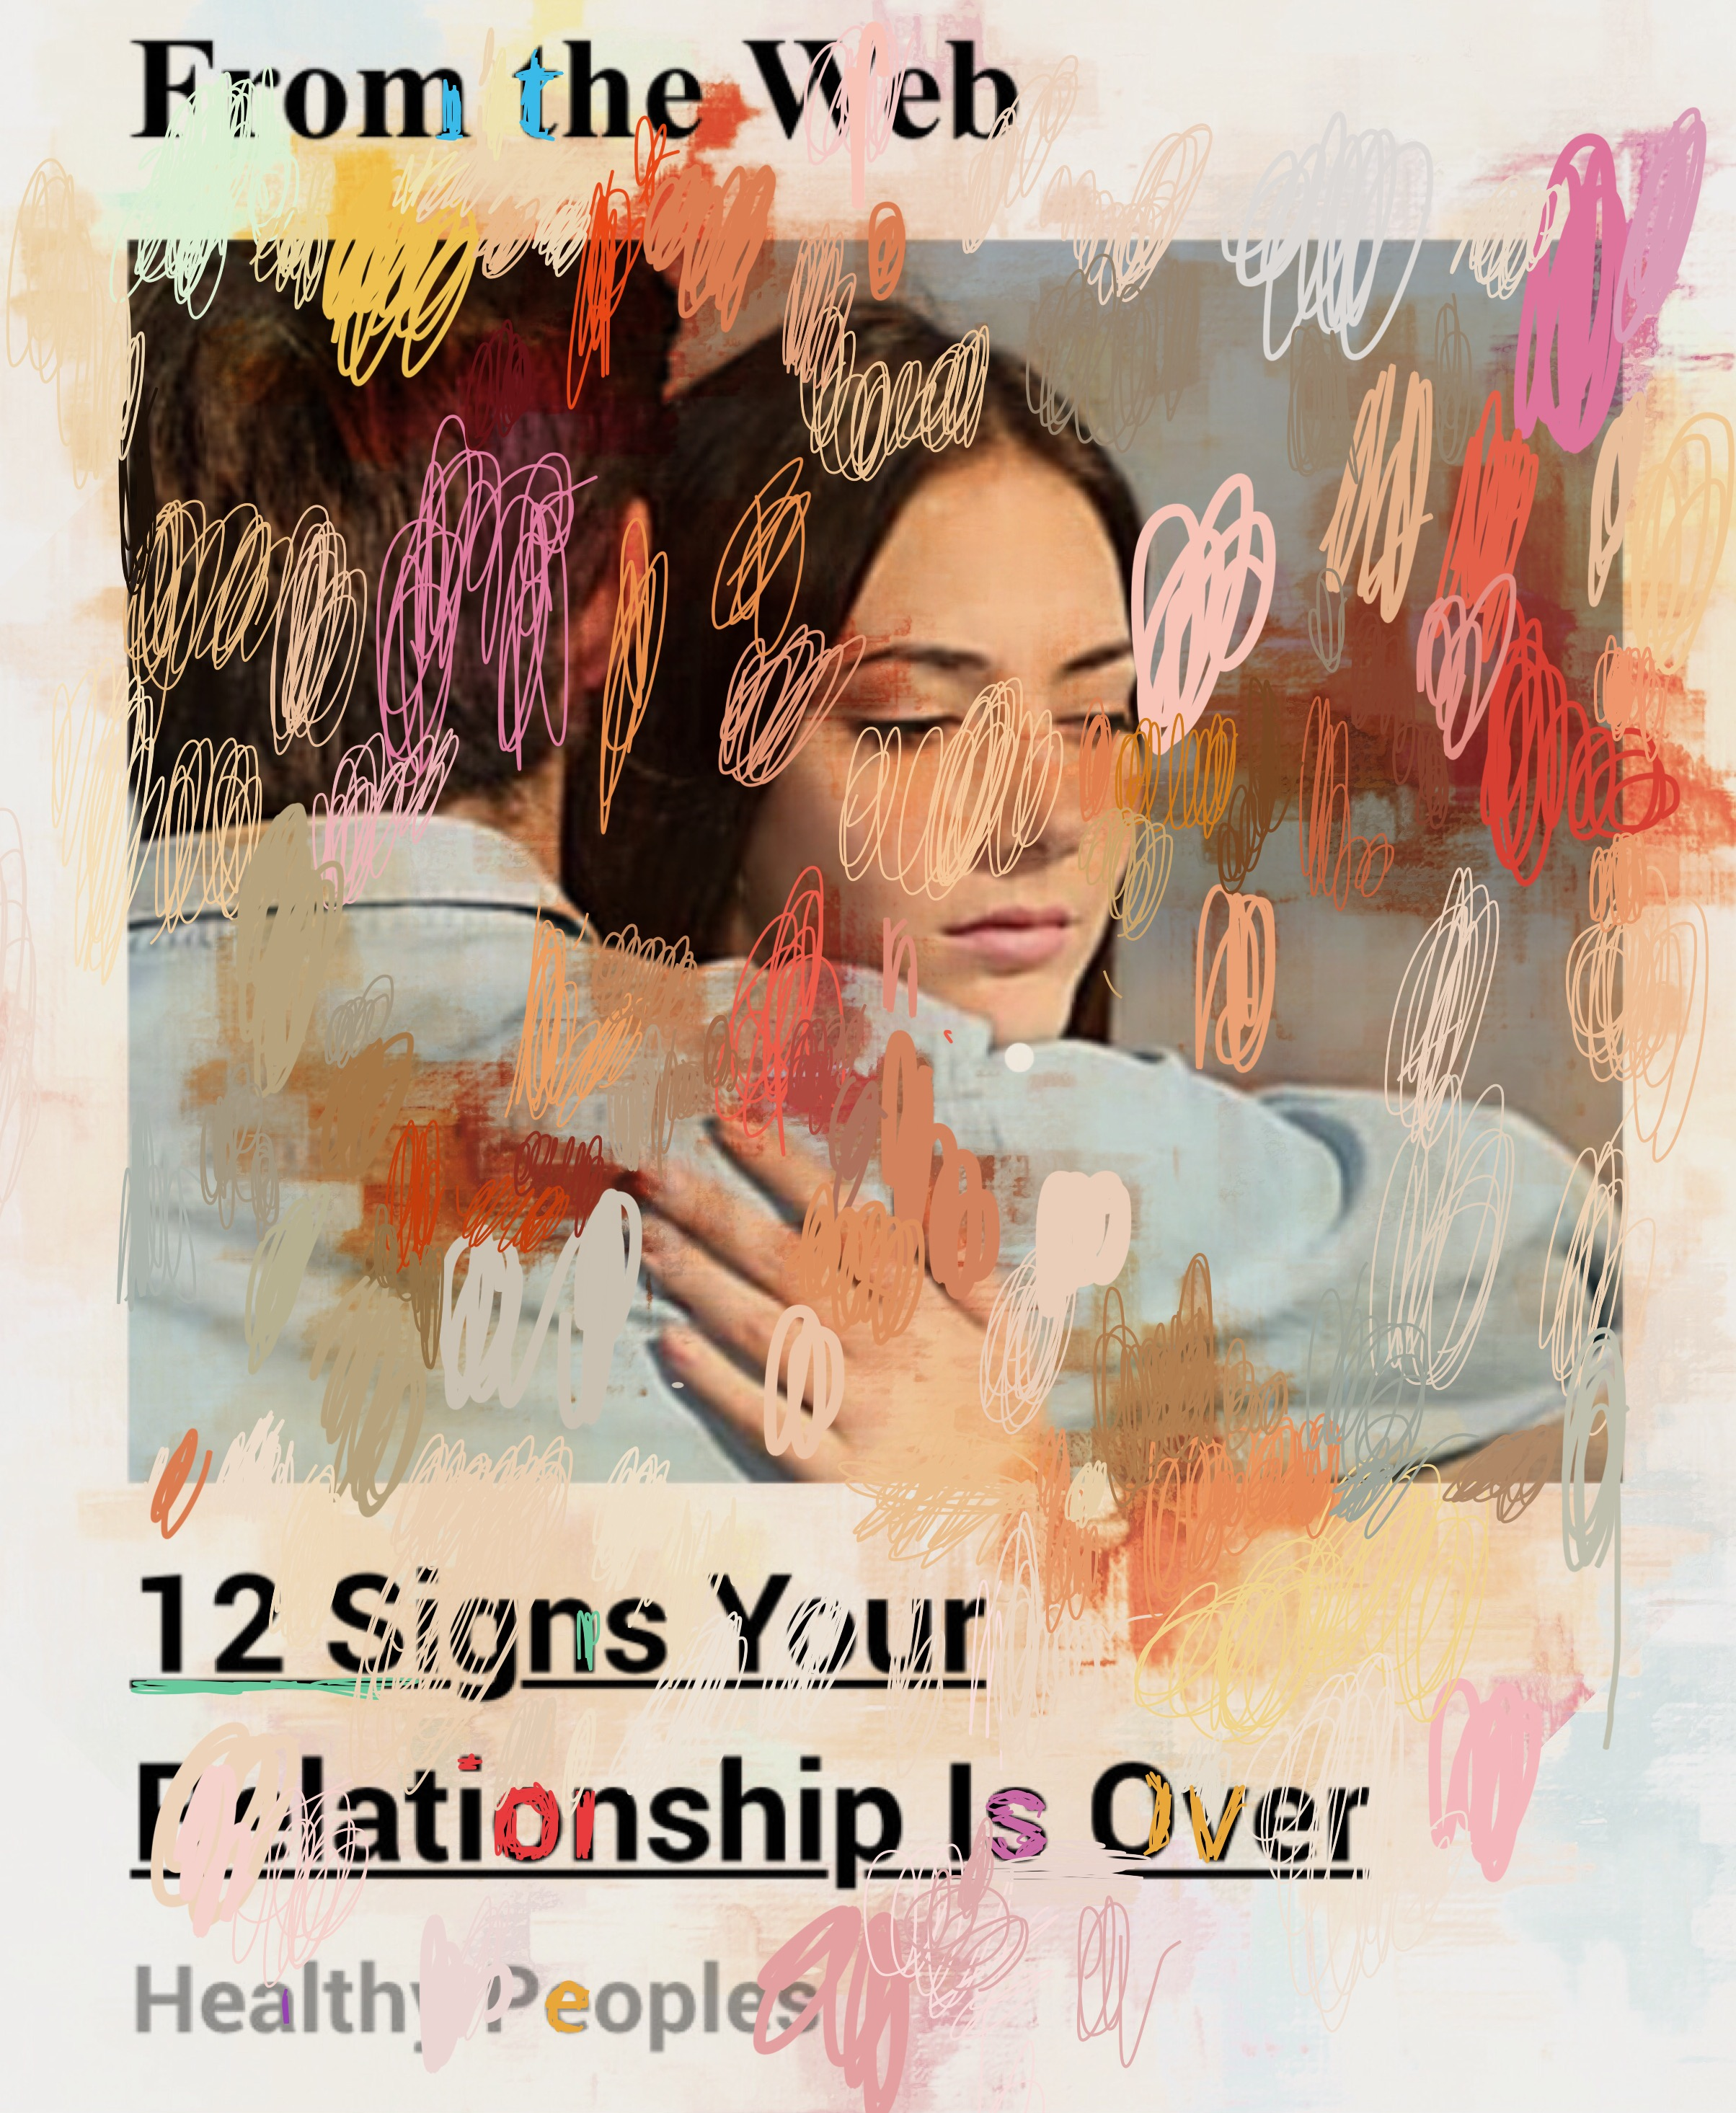 """12 Signs Your Relationship Is Over"", iPhone 6S, digital image, 2017."